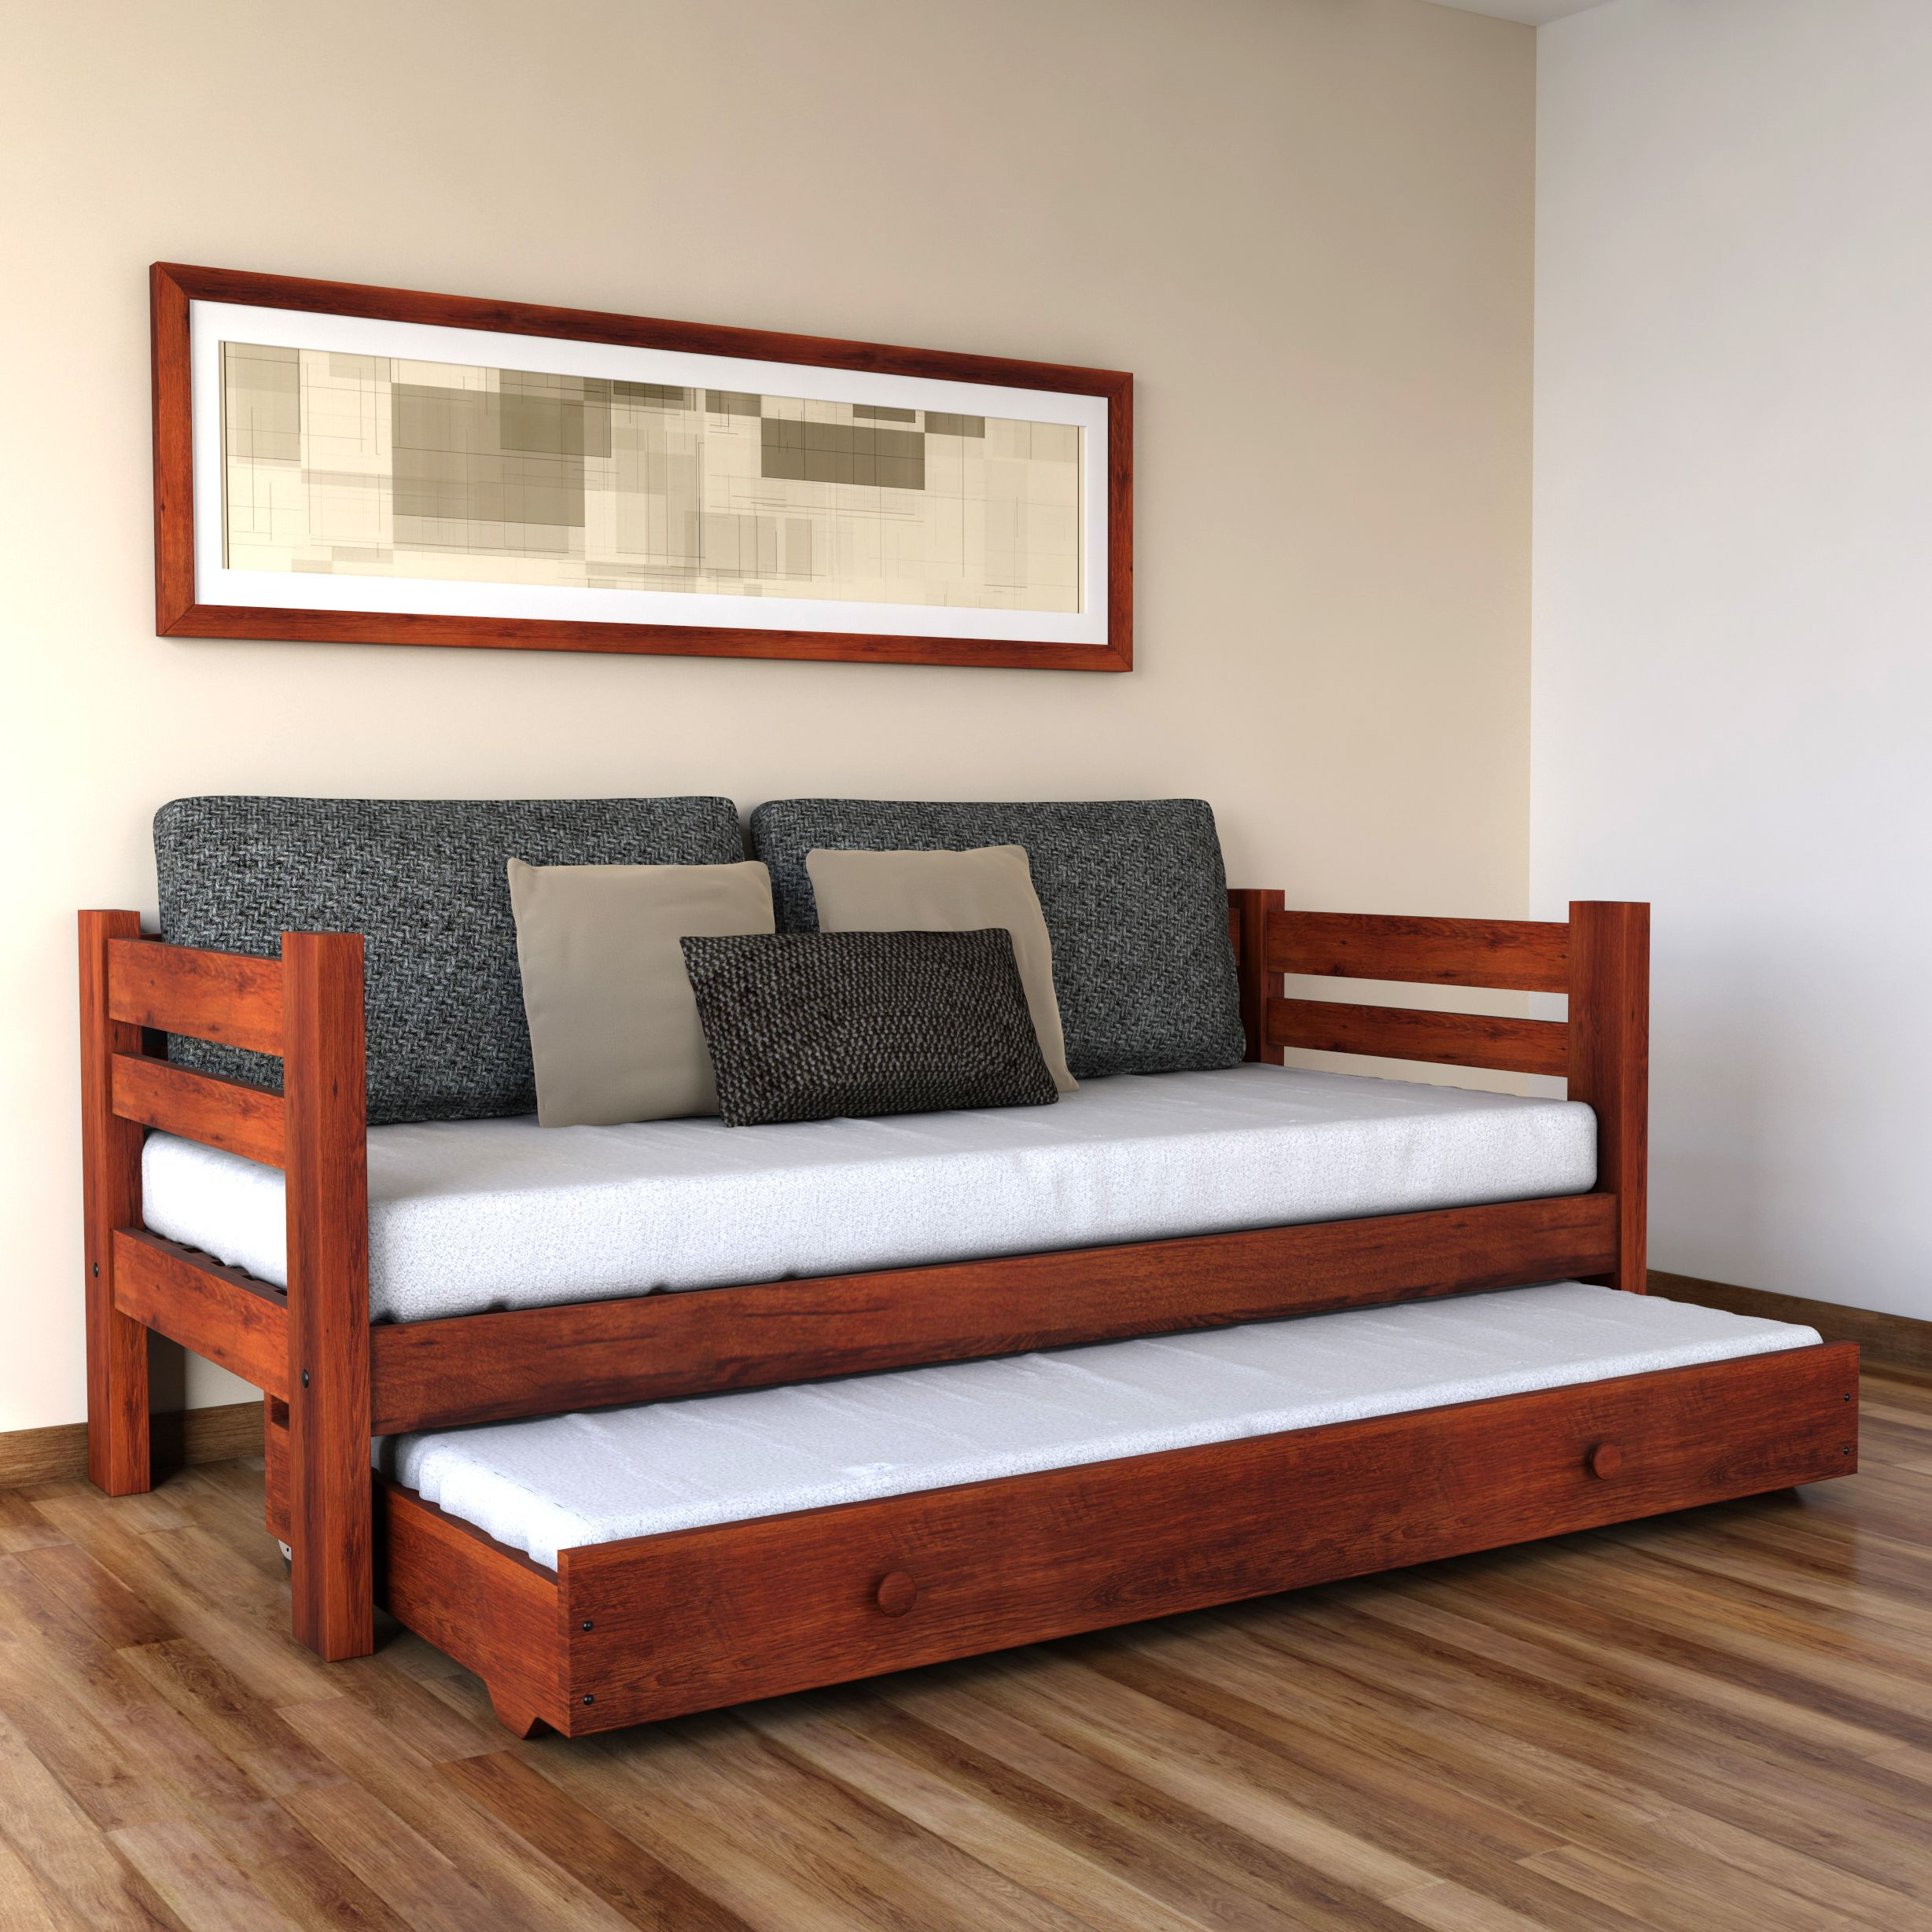 DIVAN CAMA CON CARRO MAKENNA PACIFICO | Furniture & Interior ...